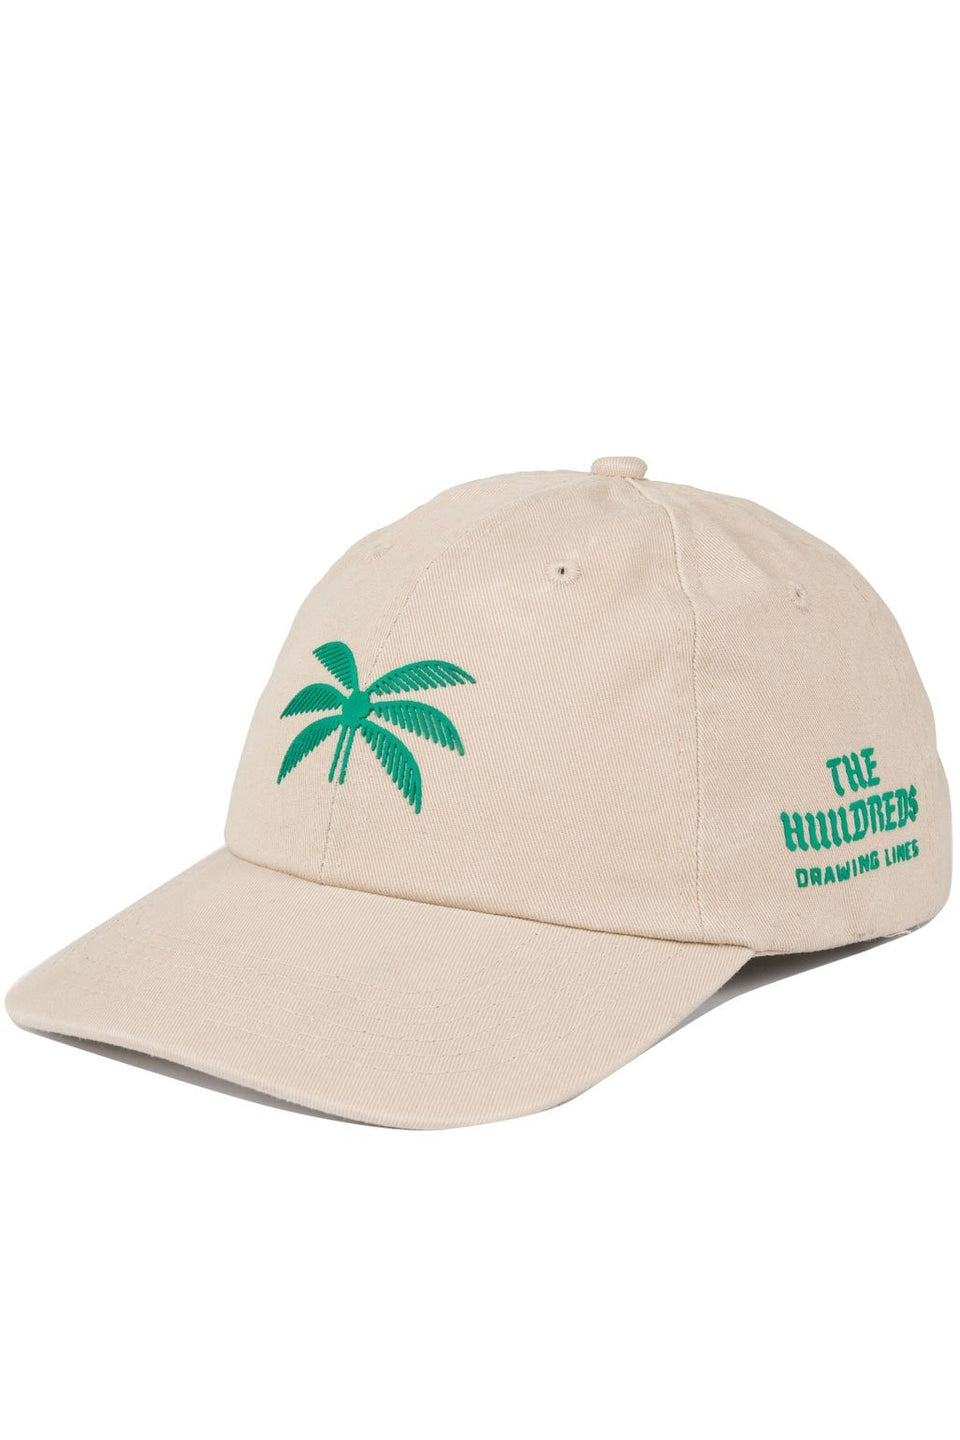 Broadway Dad Hat-HEADWEAR-The Hundreds UK